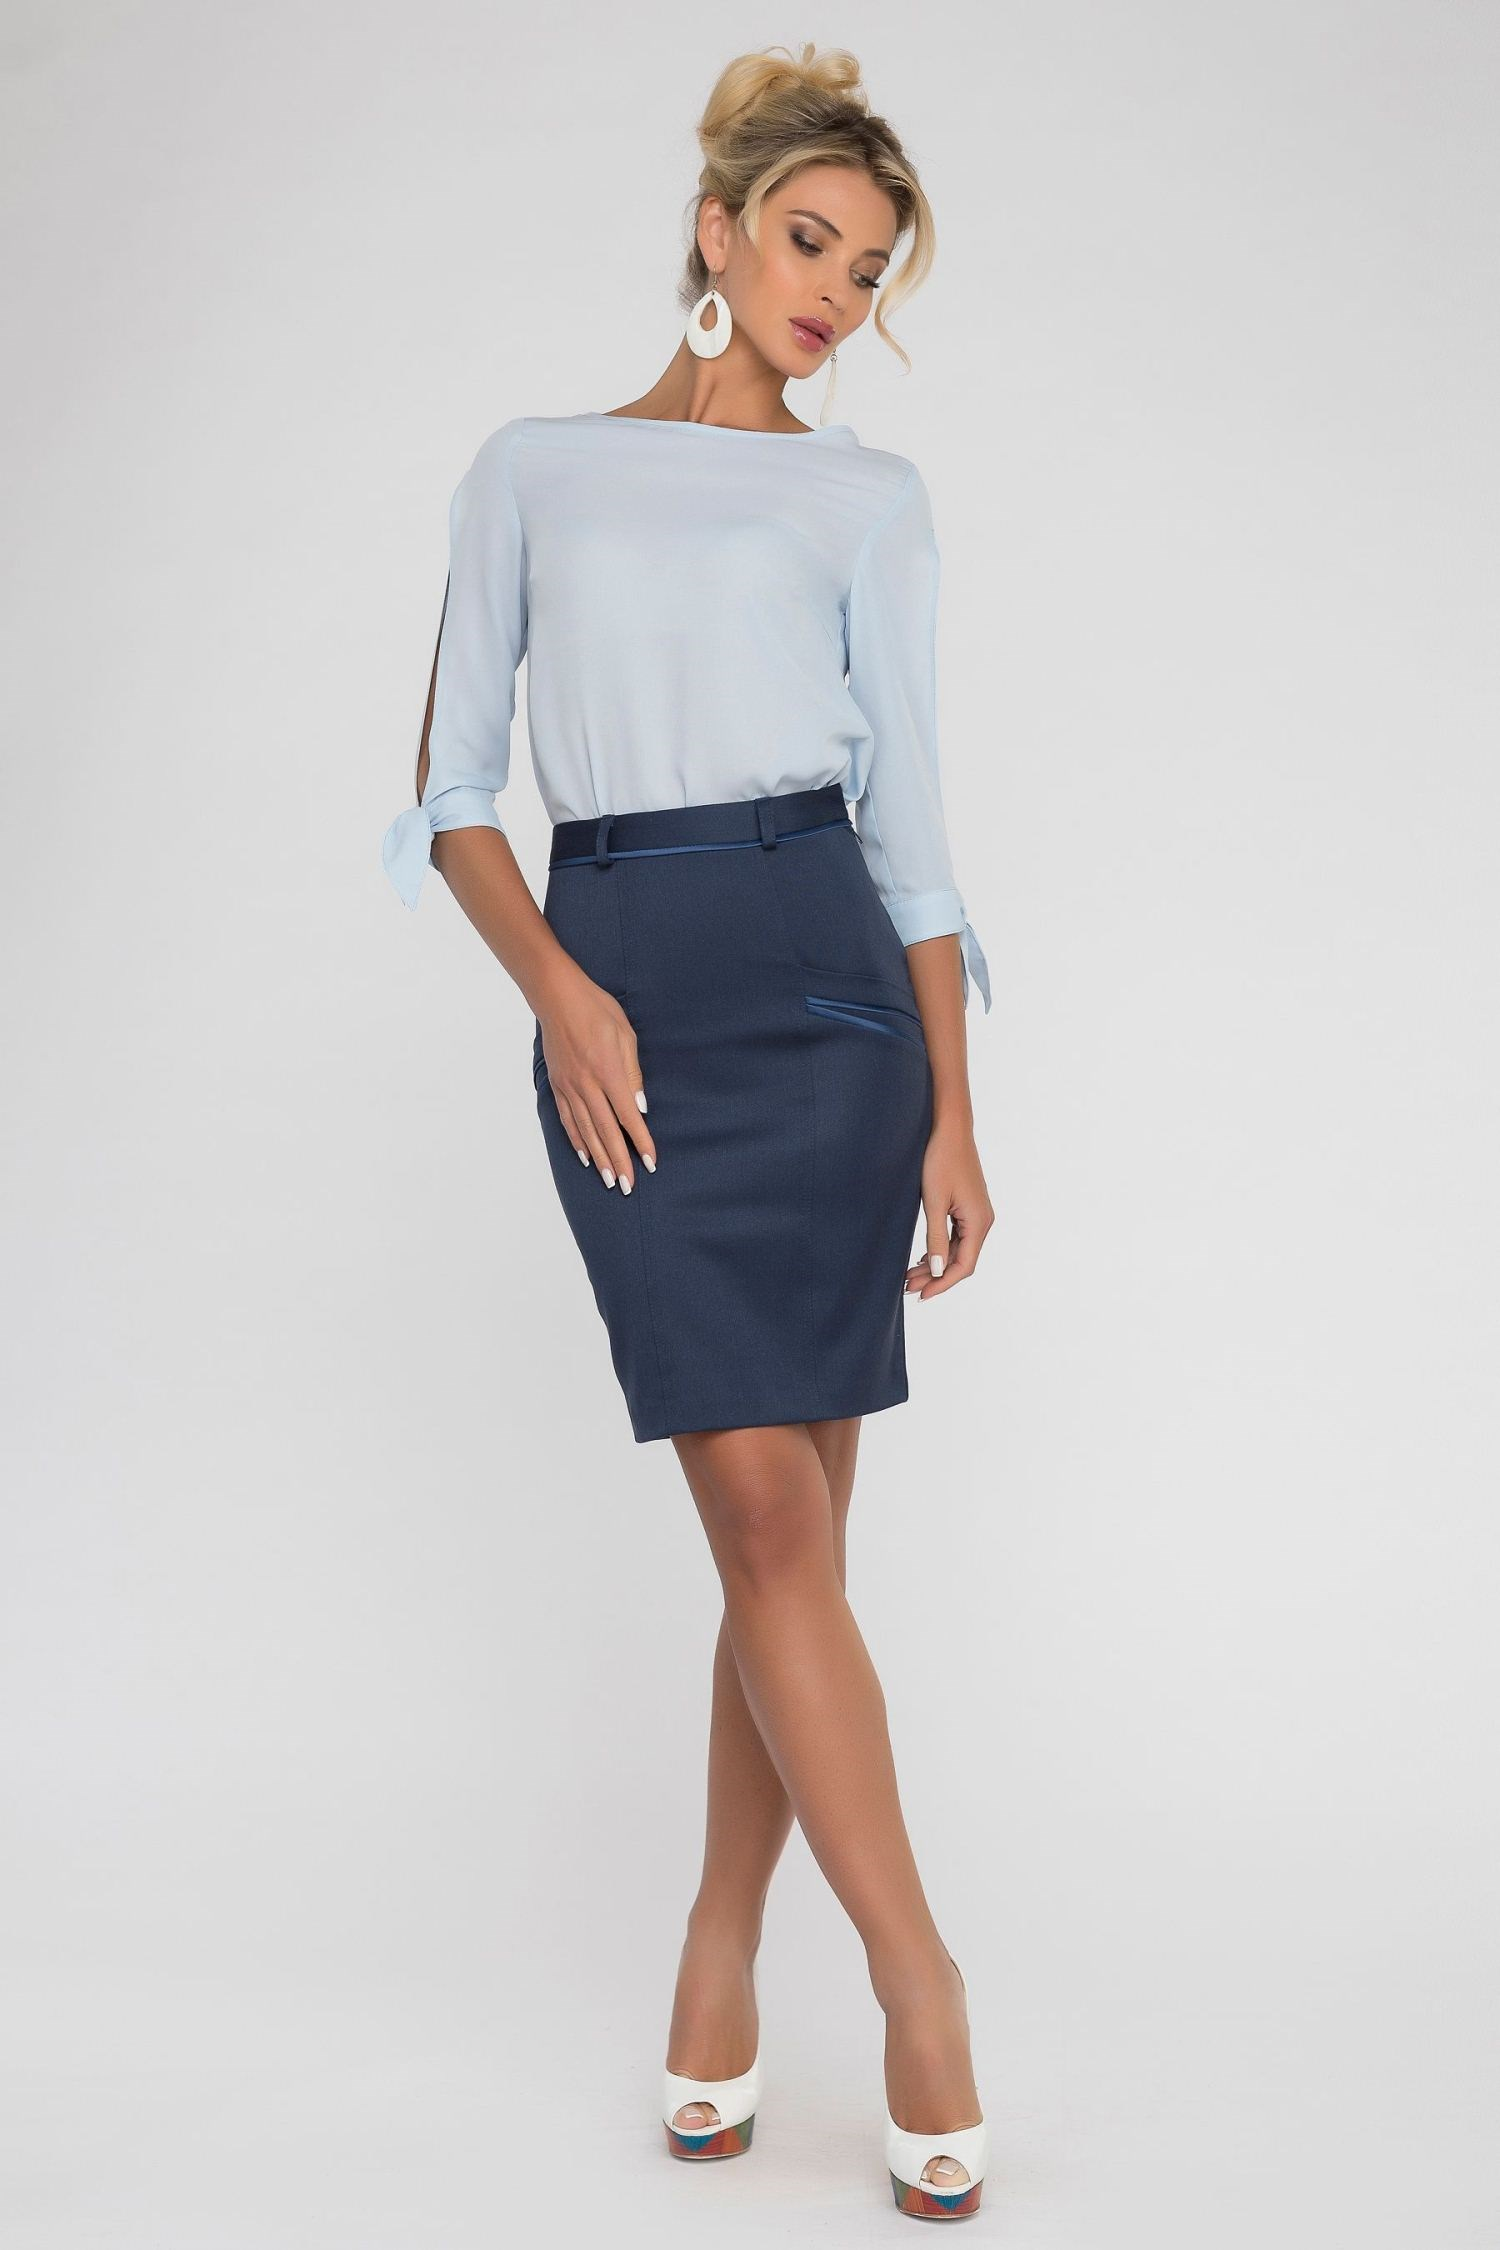 Pencil skirt with contrast pockets. slit back contrast feather pencil skirt